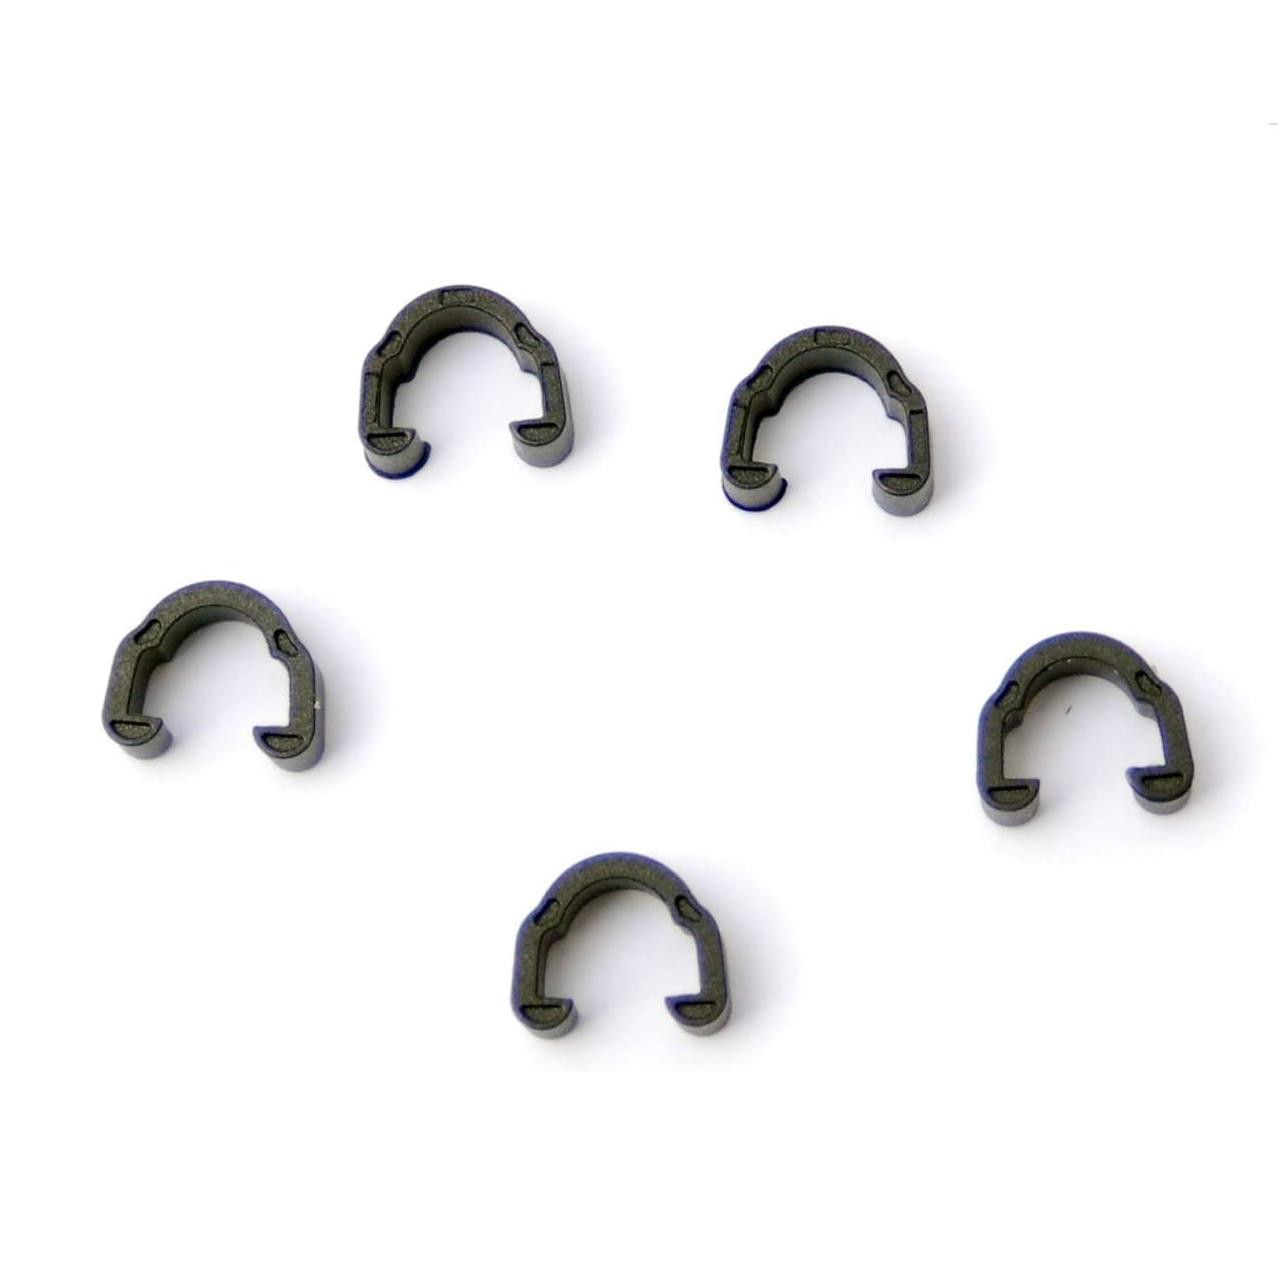 Weldtite Disc Brake Hose Clips (Pack of 5)